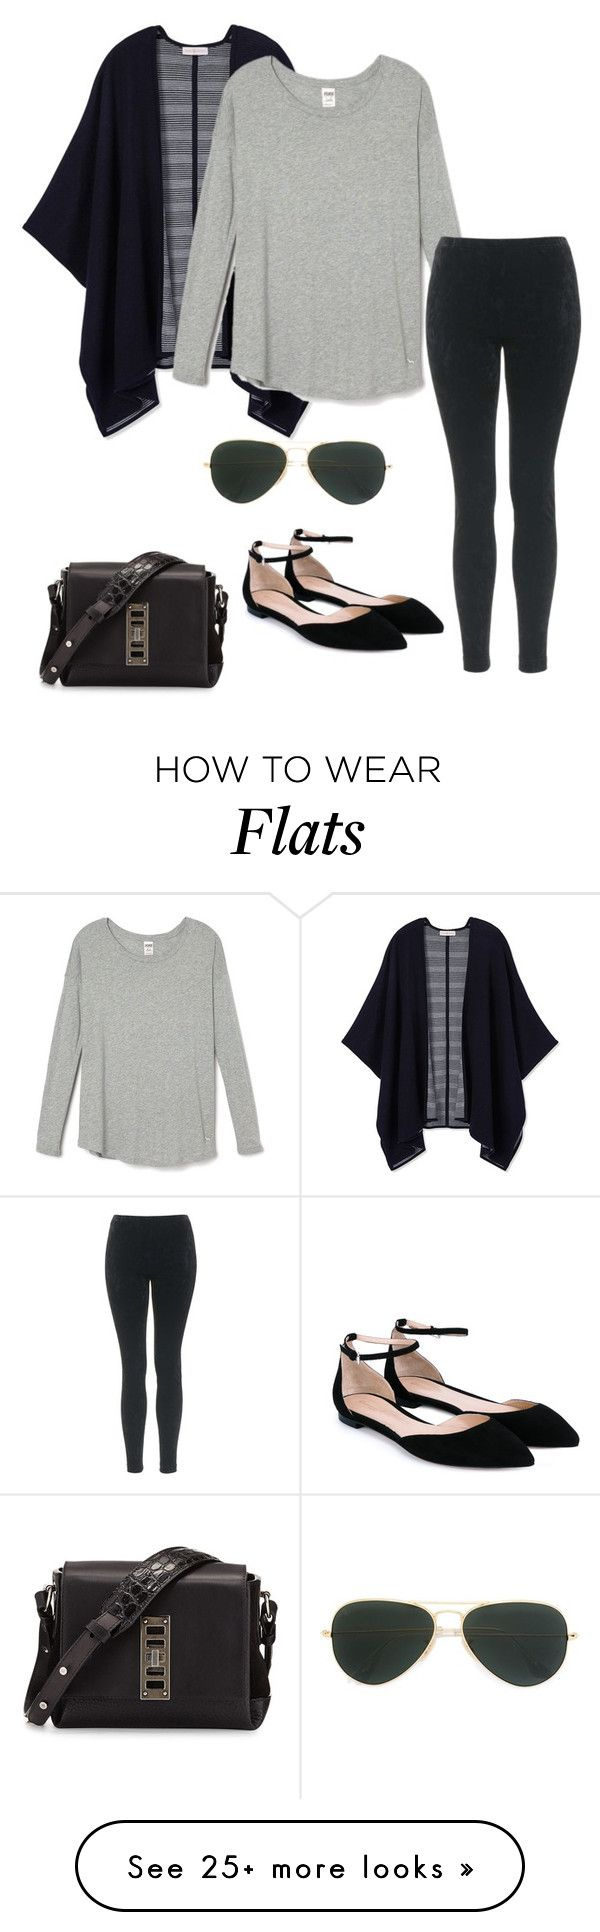 """black and gray"" by penguin-alert on Polyvore featuring Tory Burch, Topshop, Ray-Ban, Proenza Schouler and Gianvito Rossi"